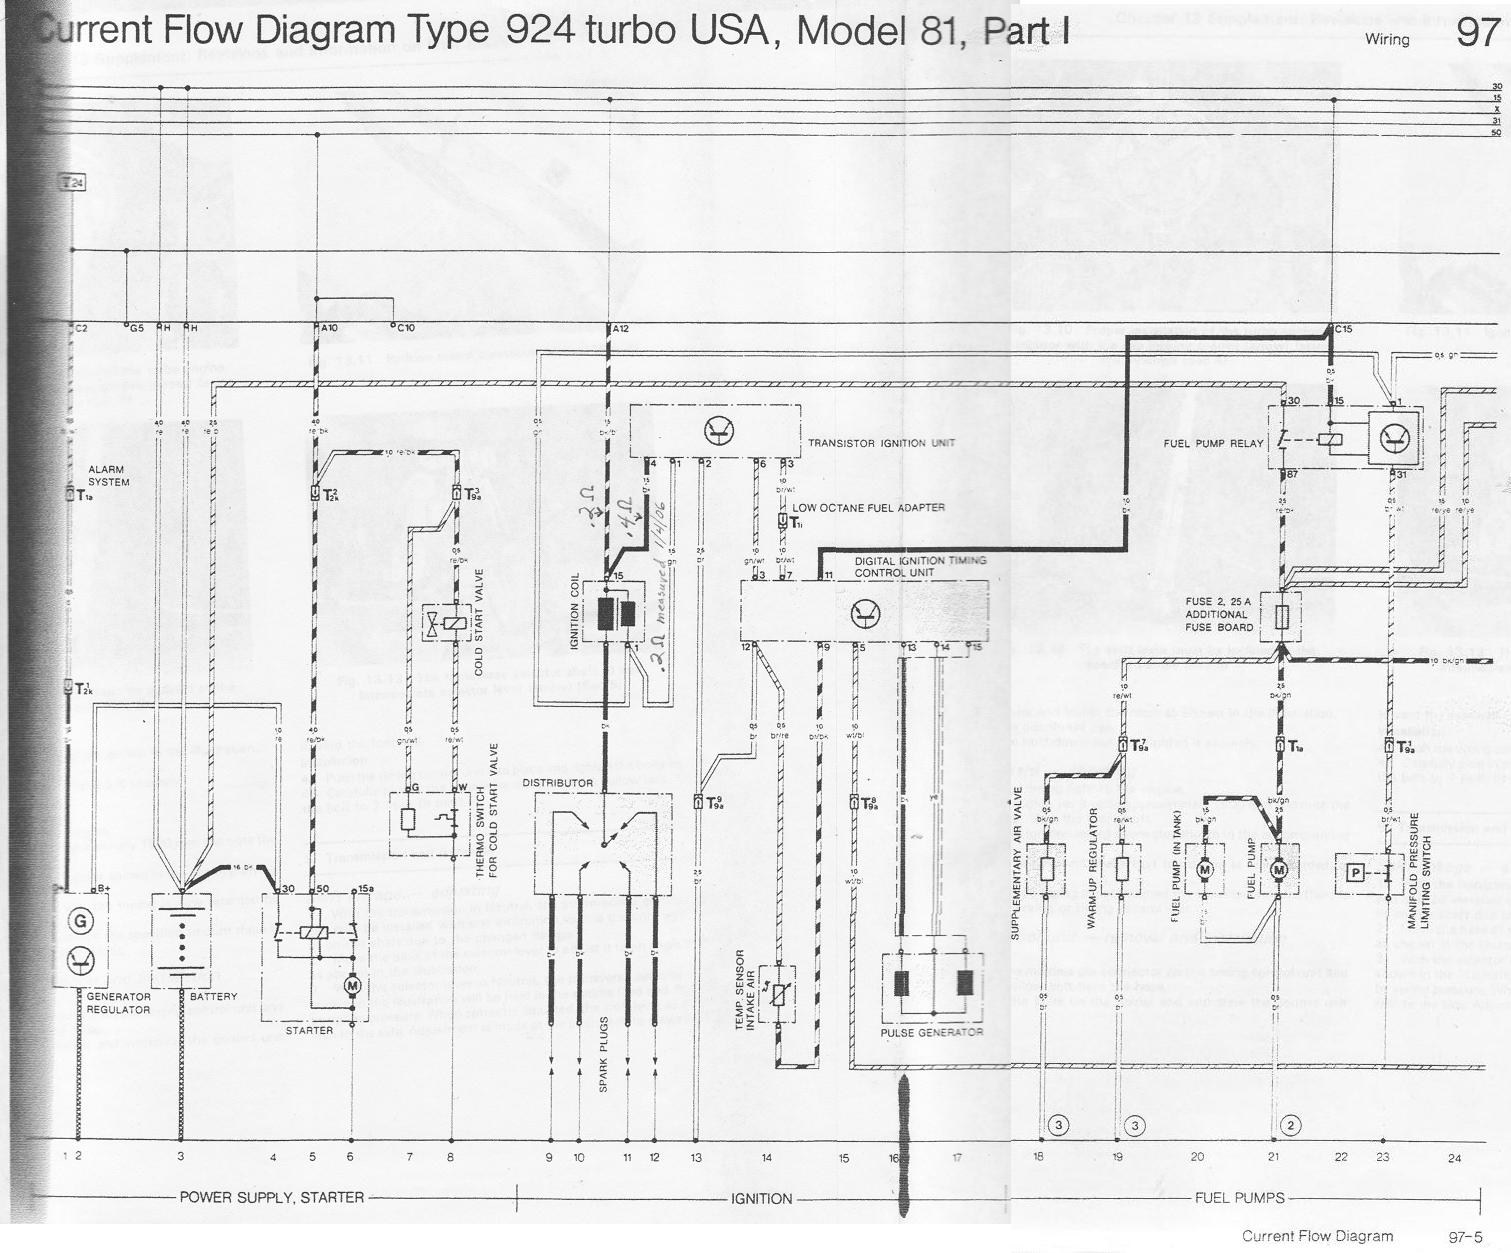 1972 f250 ignition wiring schematic